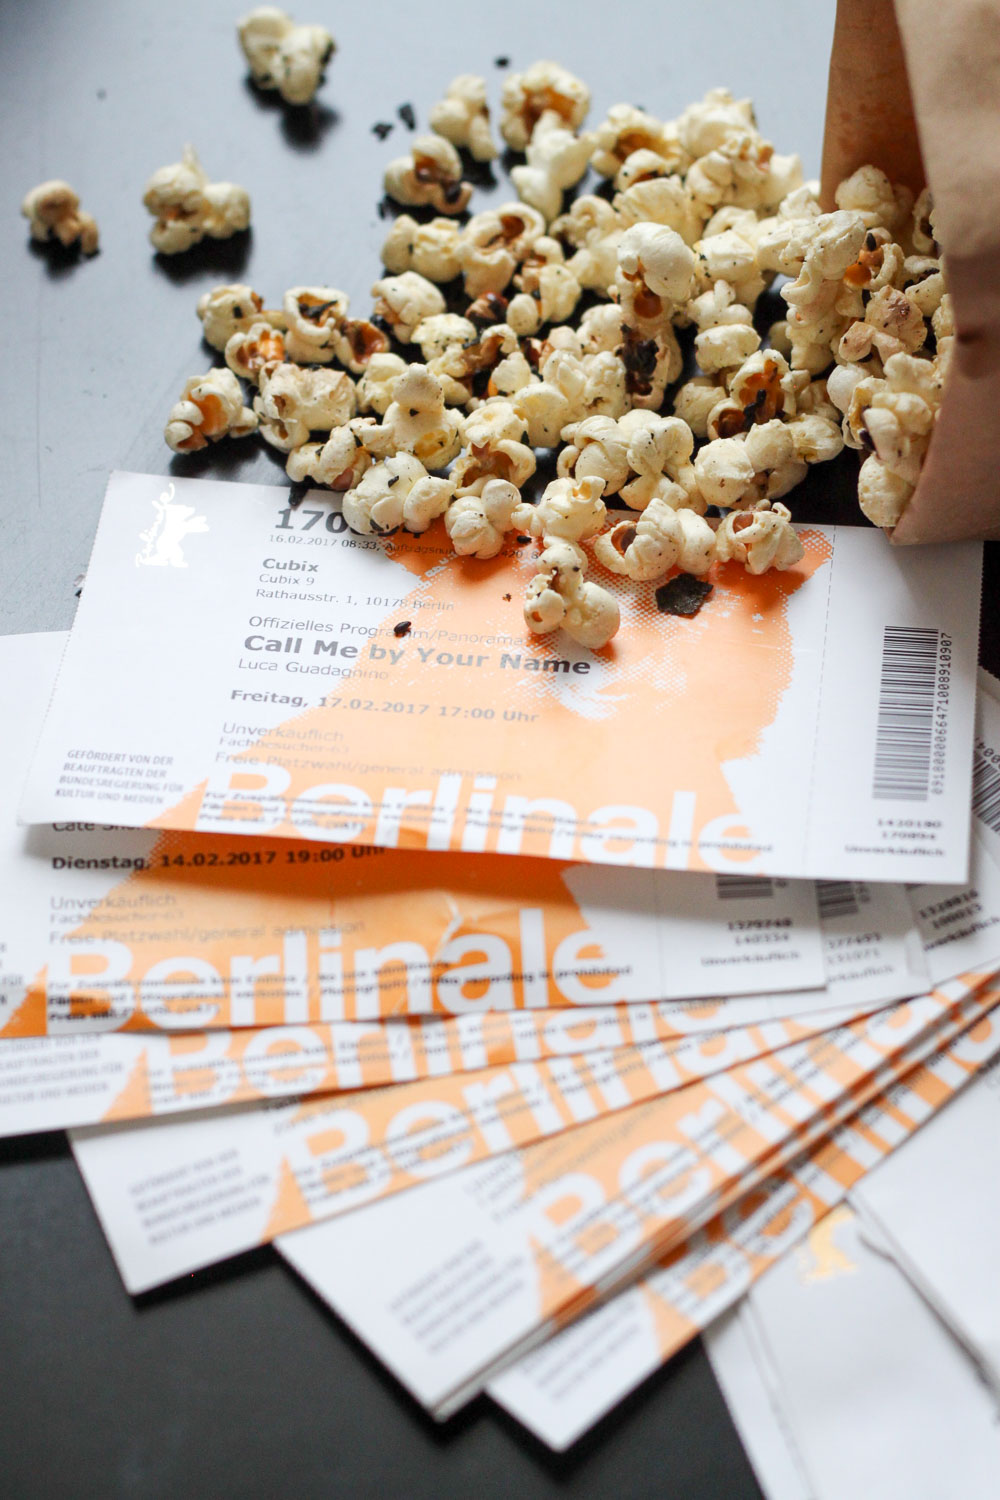 Berlinale tickets and popcorn (Eat Me. Drink Me.)